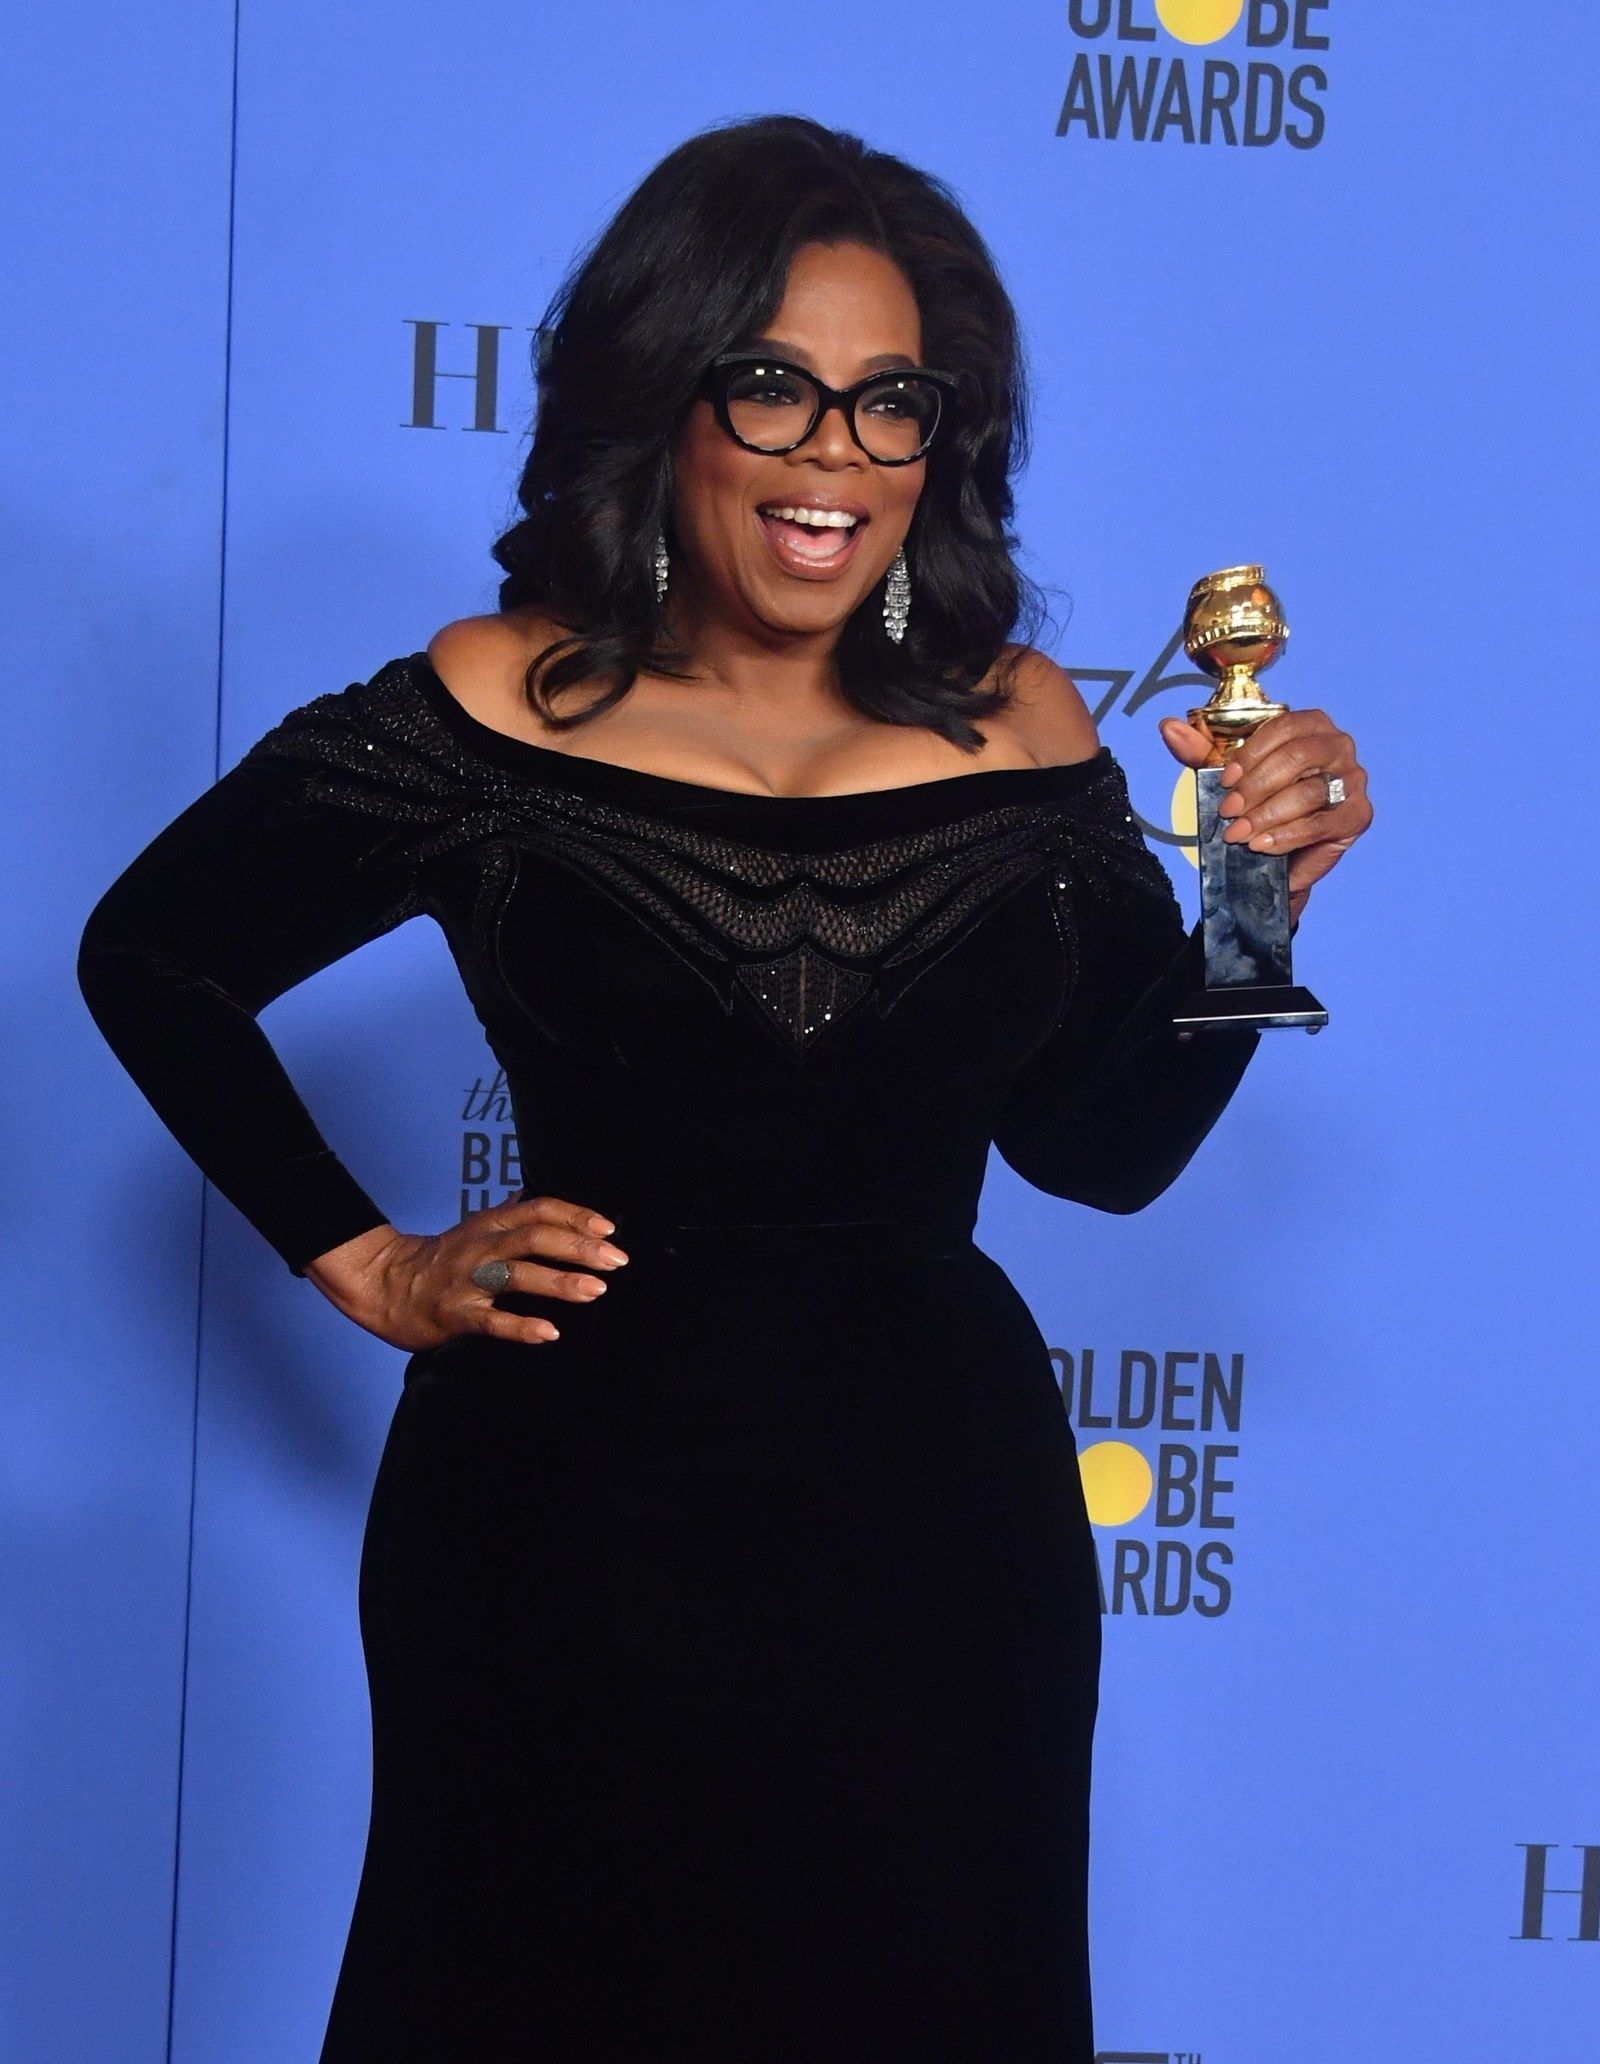 If she runs, Oprah could dominate the Democratic field in 2020